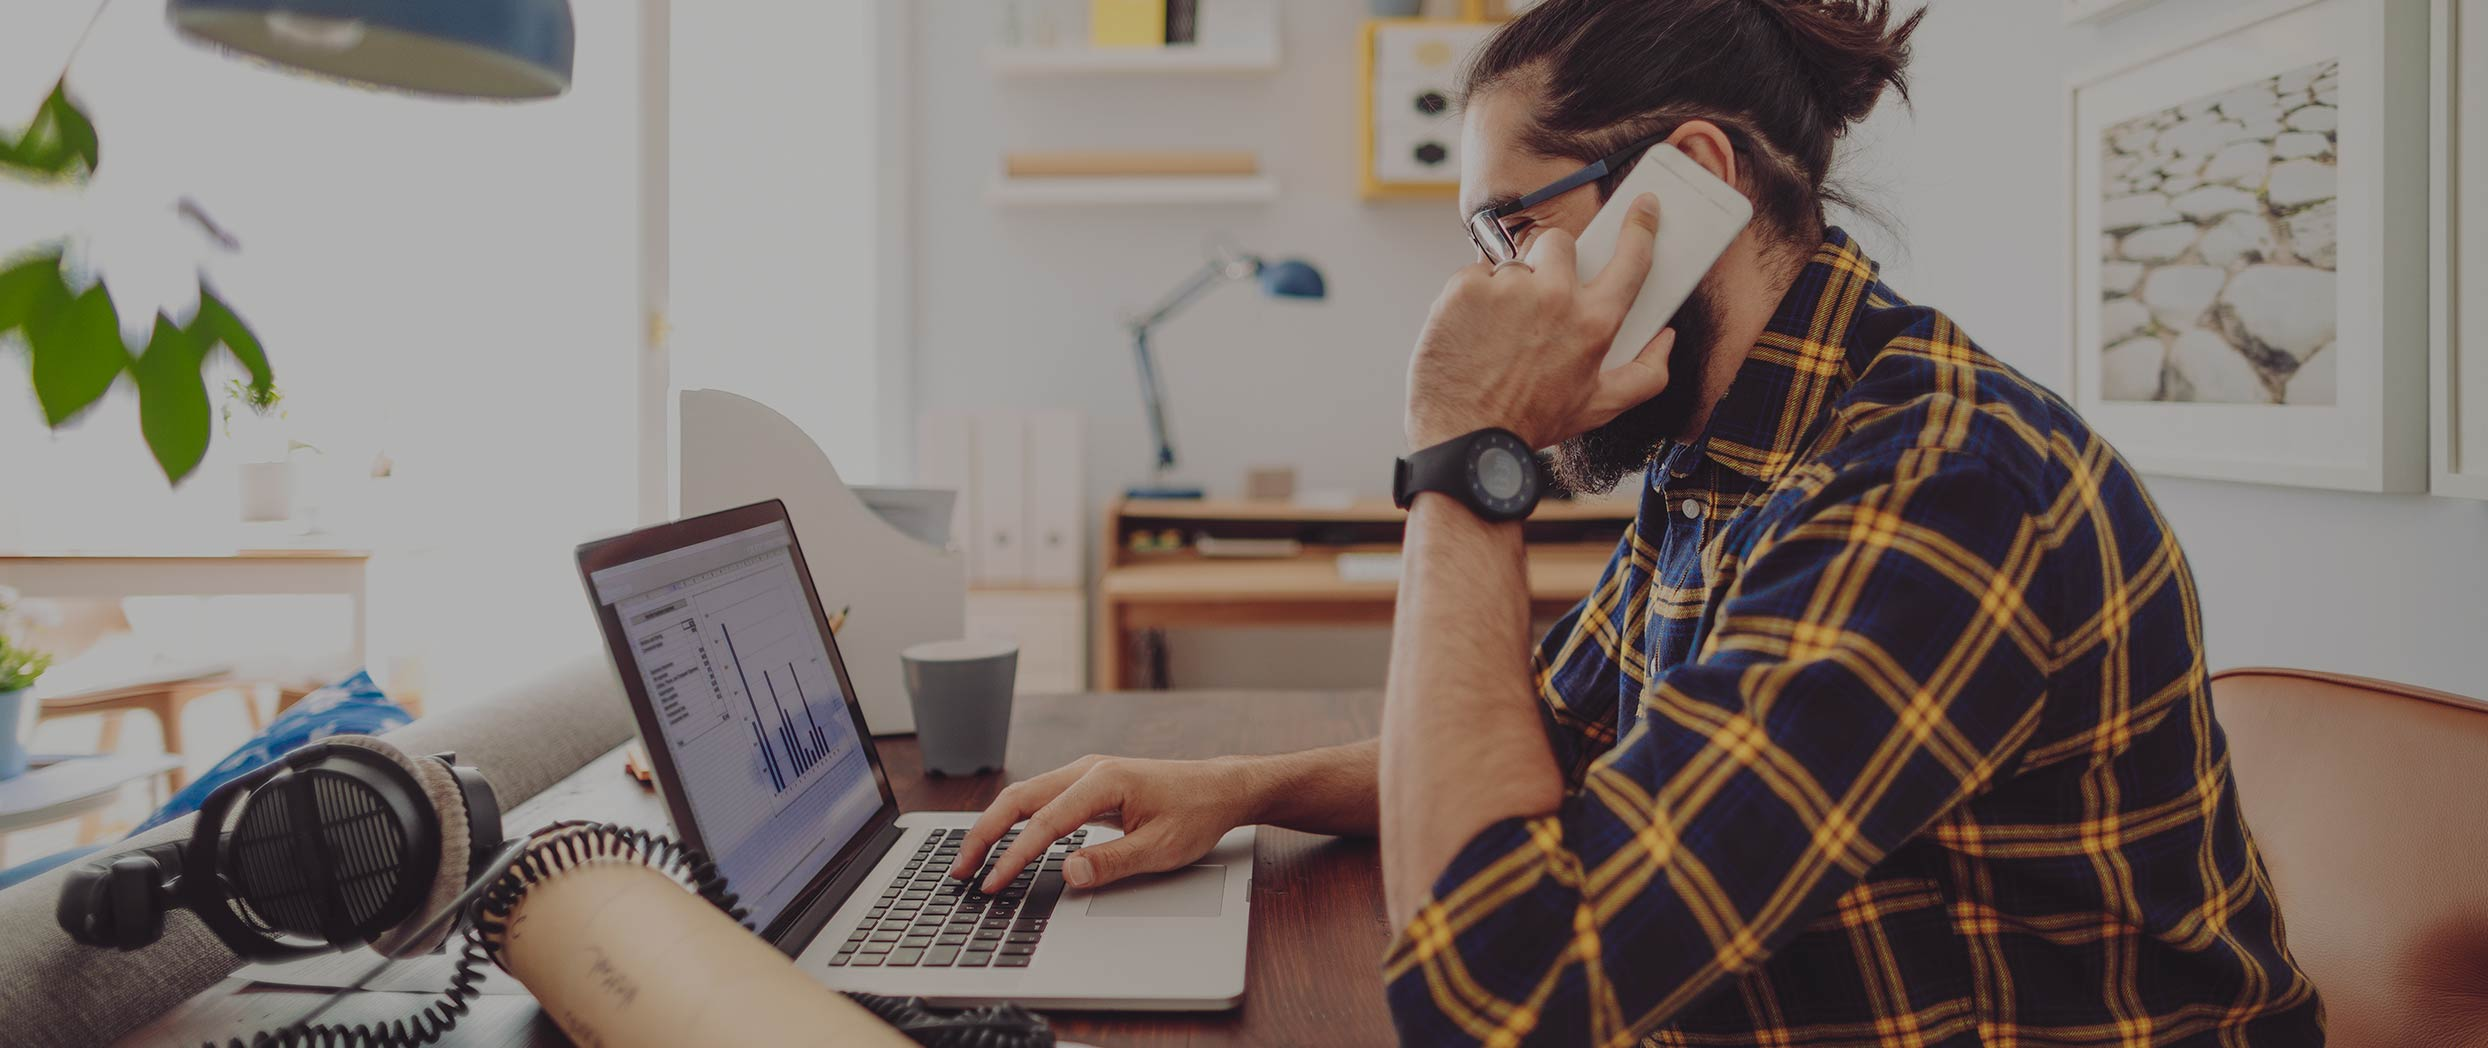 Tips for working remotely without putting your company at risk